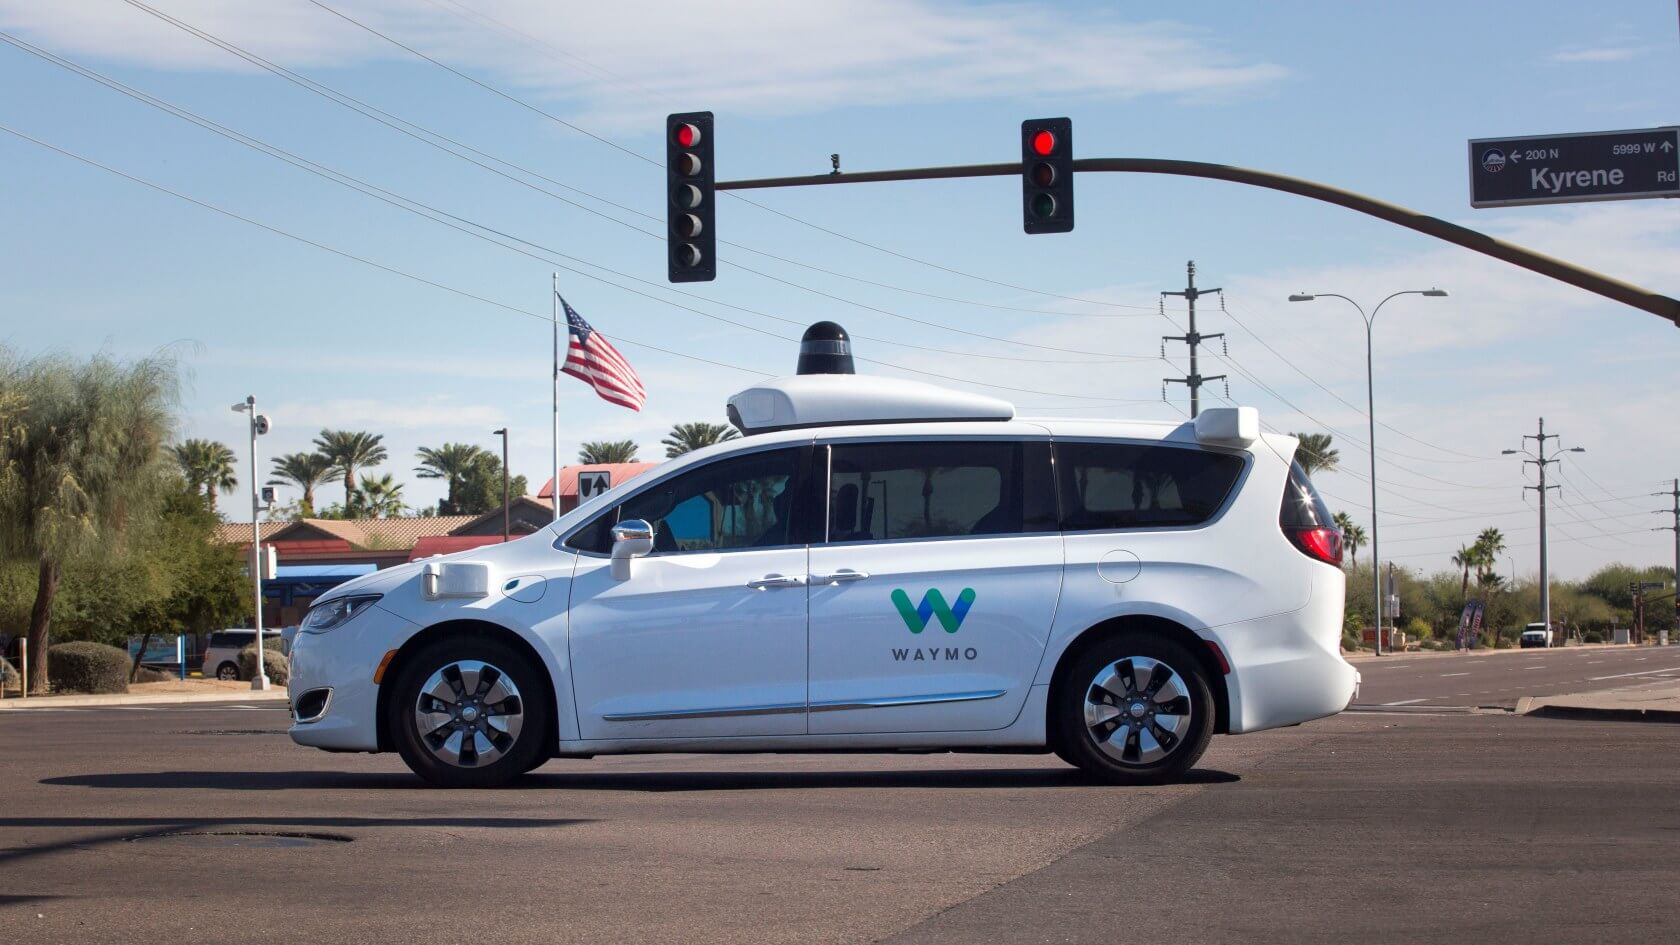 Waymo is reportedly planning to launch its autonomous Uber-like ride-hailing service in December